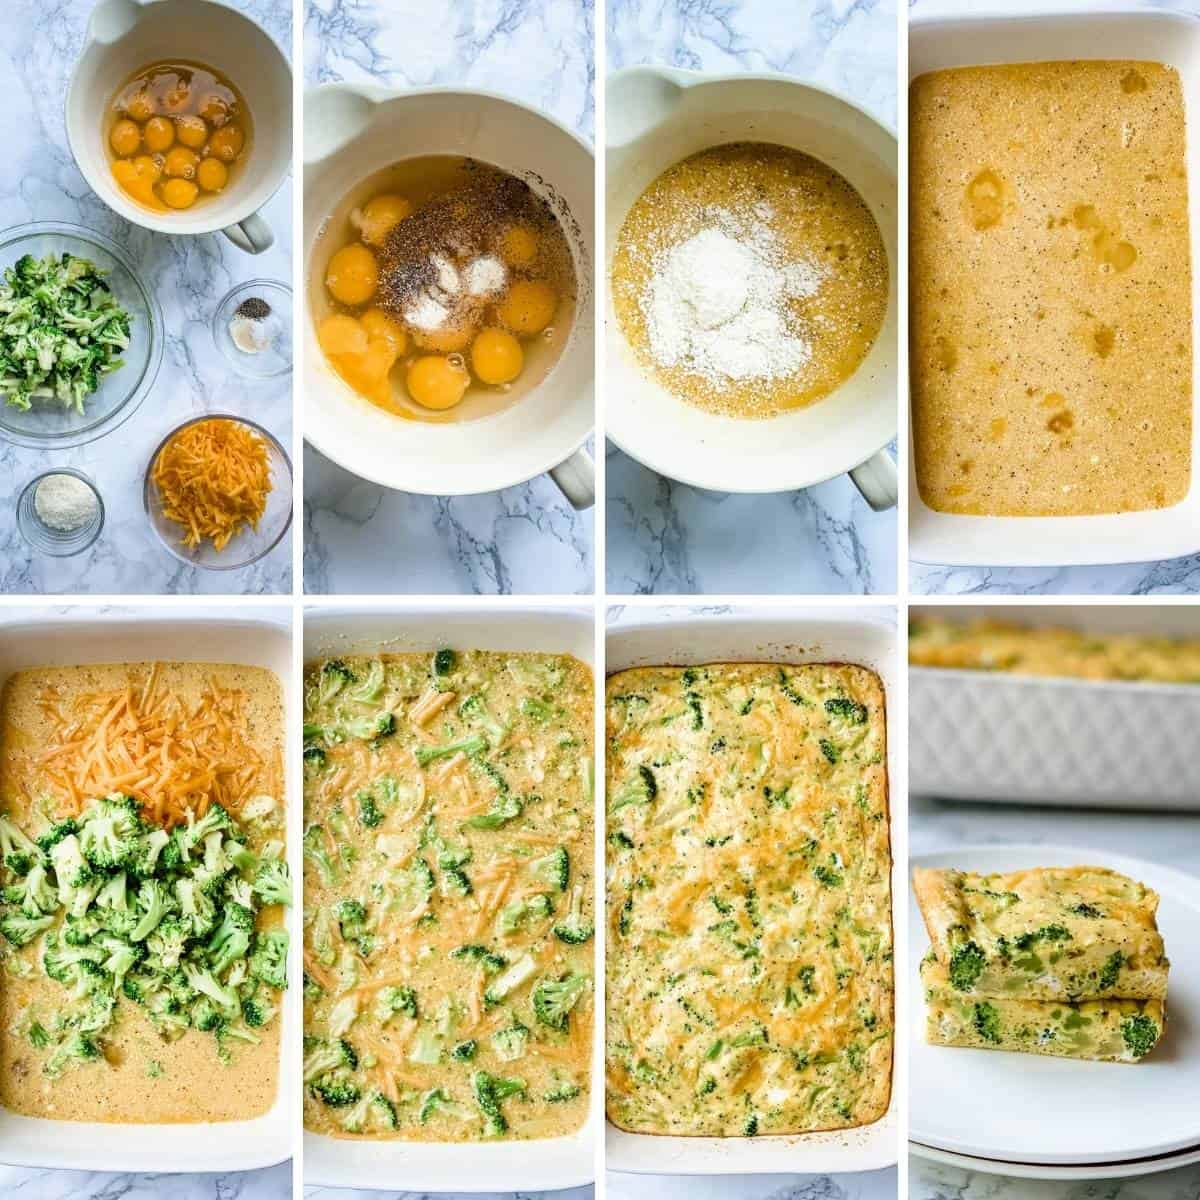 Step by step collage showing how to make a breakfast Broccoli Egg bake with cheese